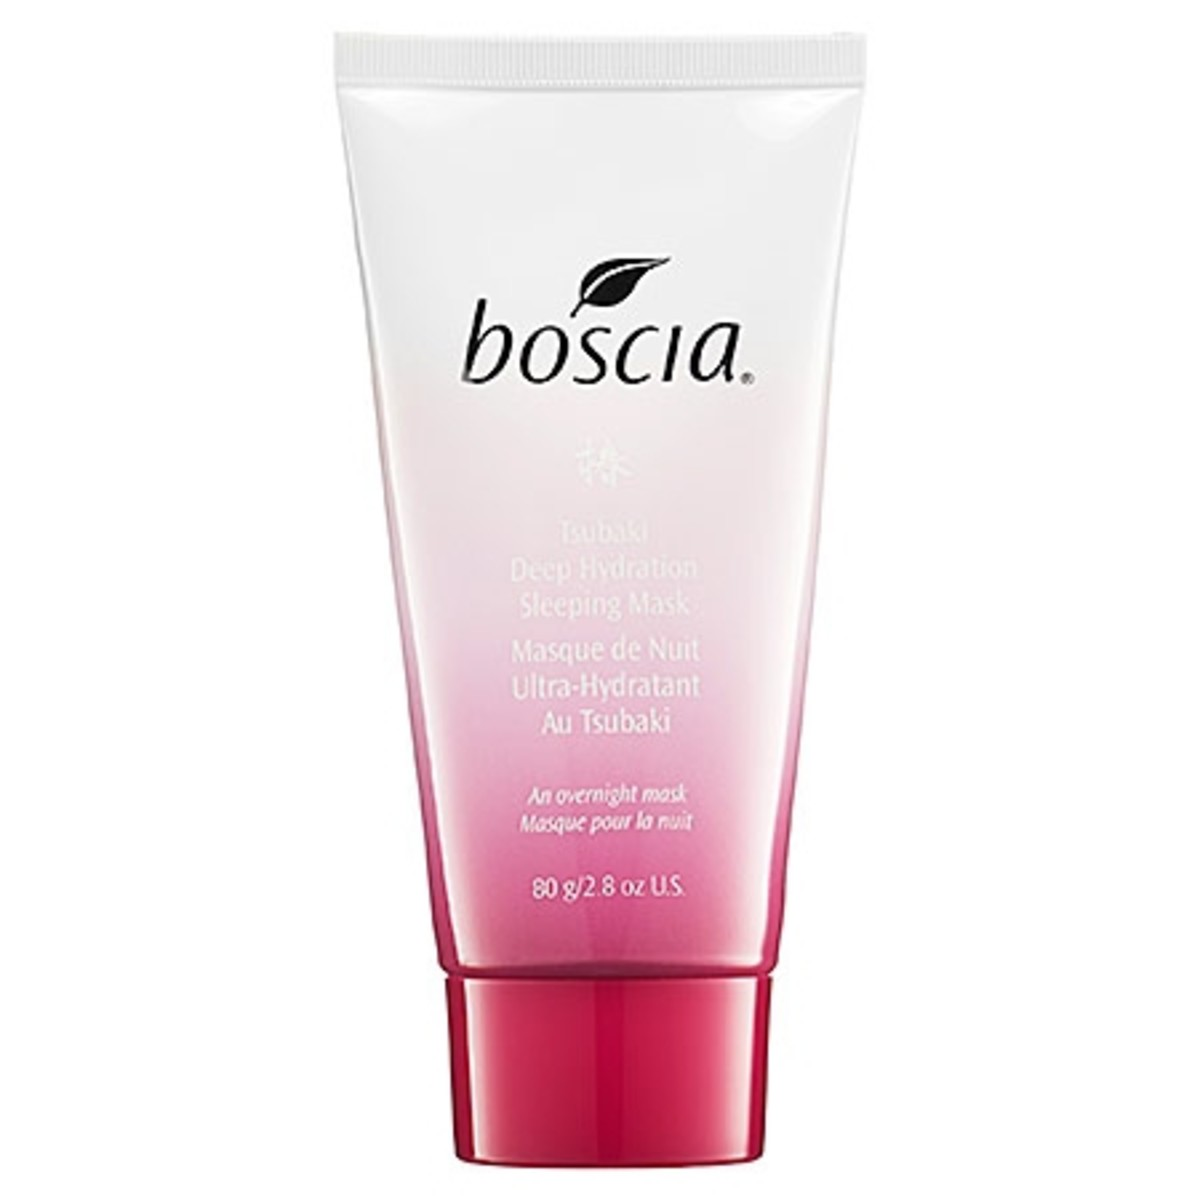 Boscia Tsubaki Deep Hydration Sleeping Mask